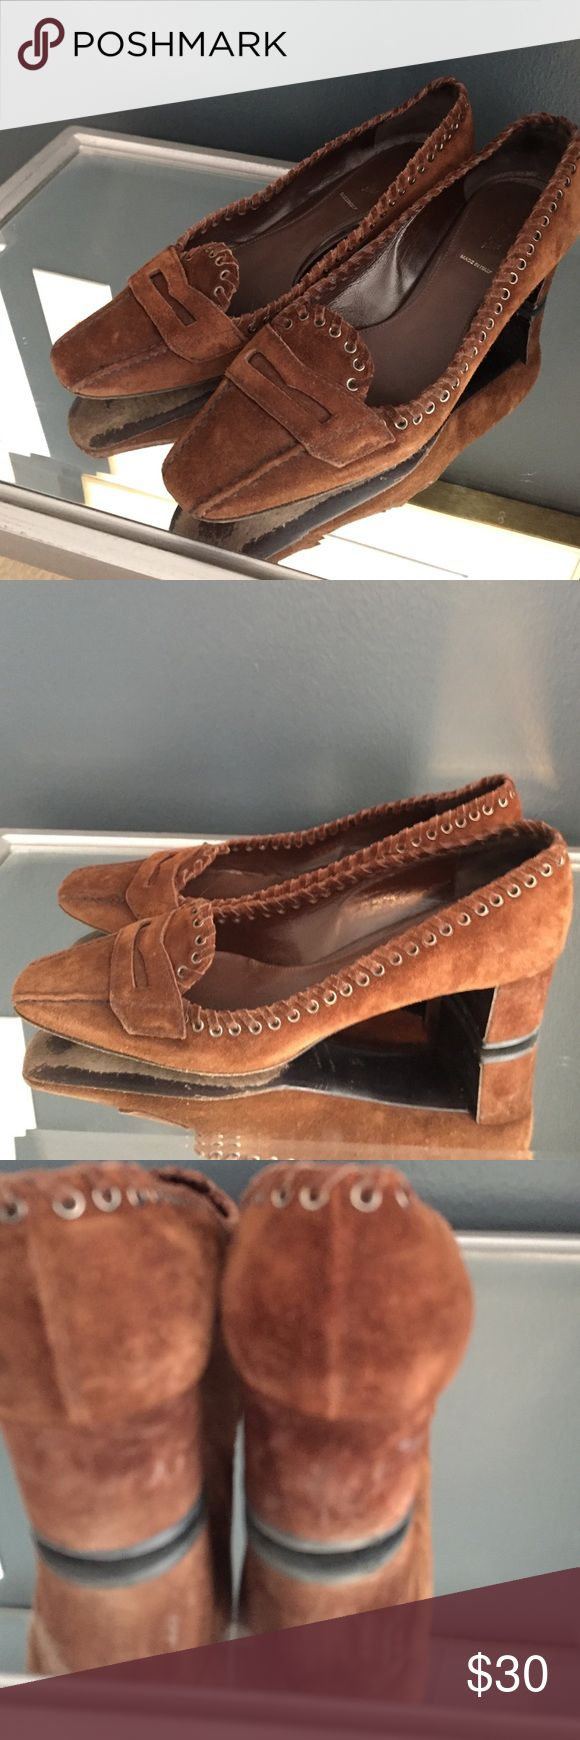 Prada low heeled  loafers These brown suede Prada loafers have cool top stitching detailing. A little worn at the heels, but still in overall good condition. Prada Shoes Flats & Loafers